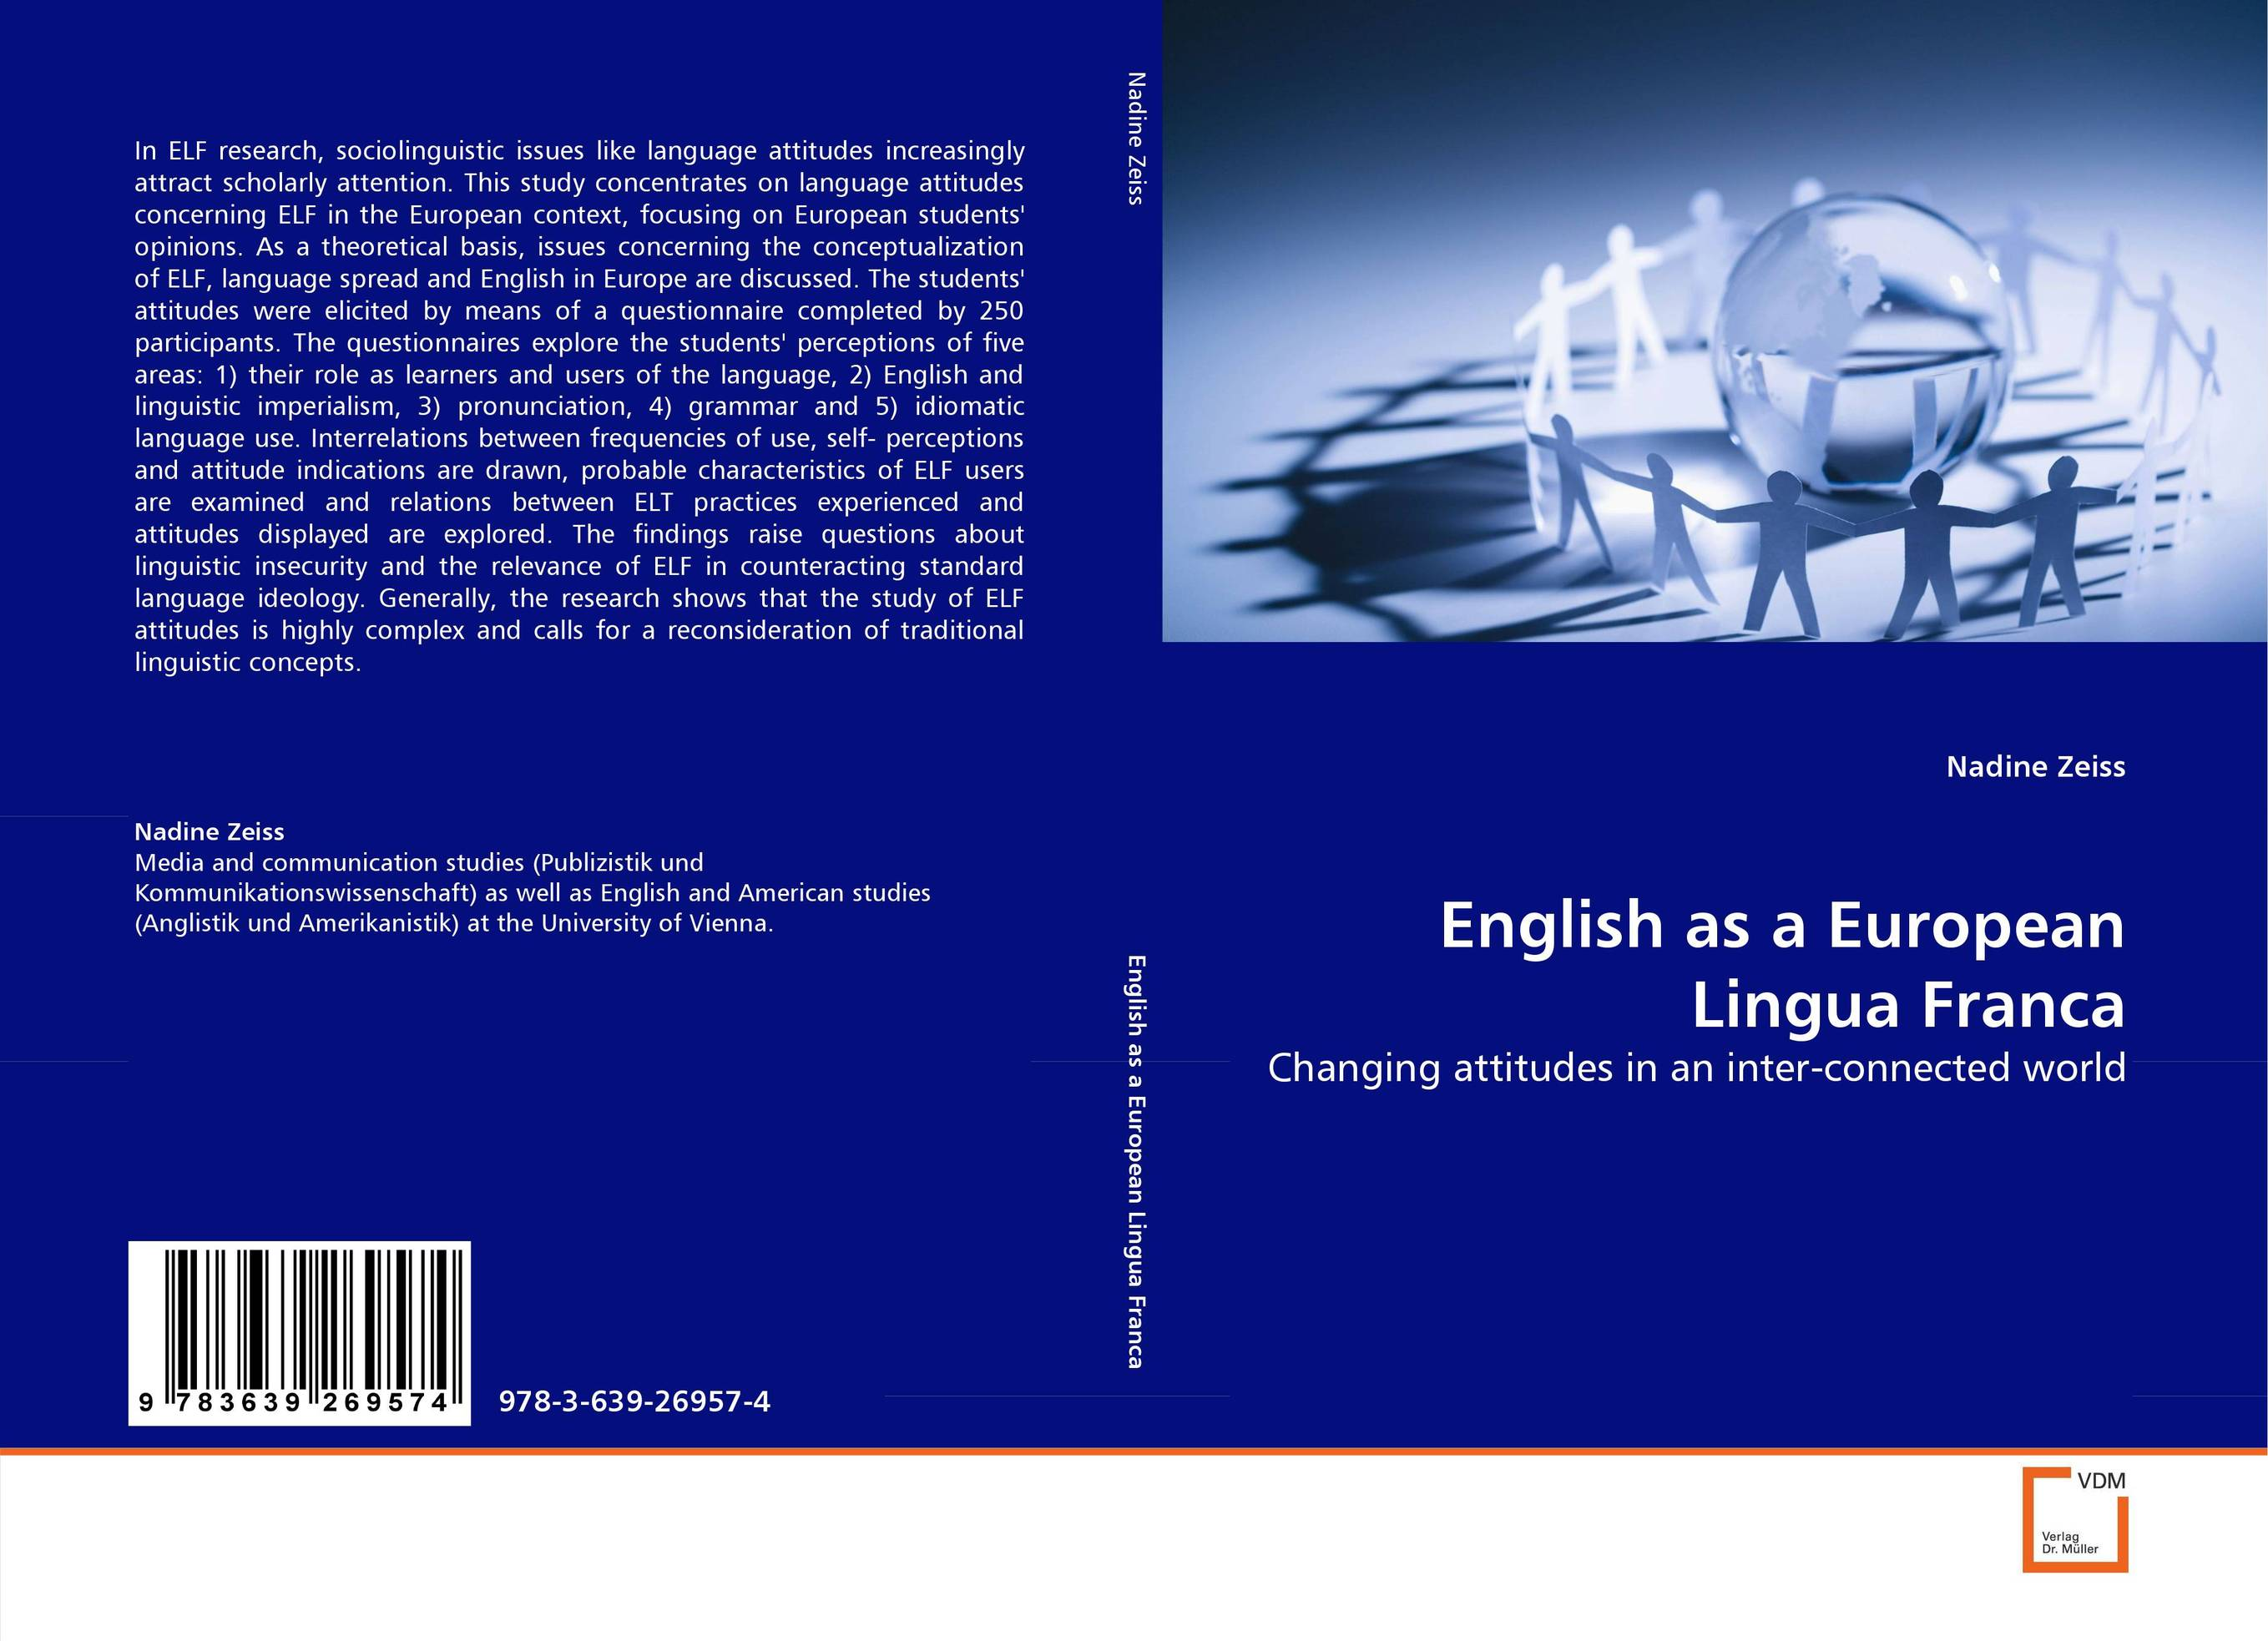 English as a European Lingua Franca